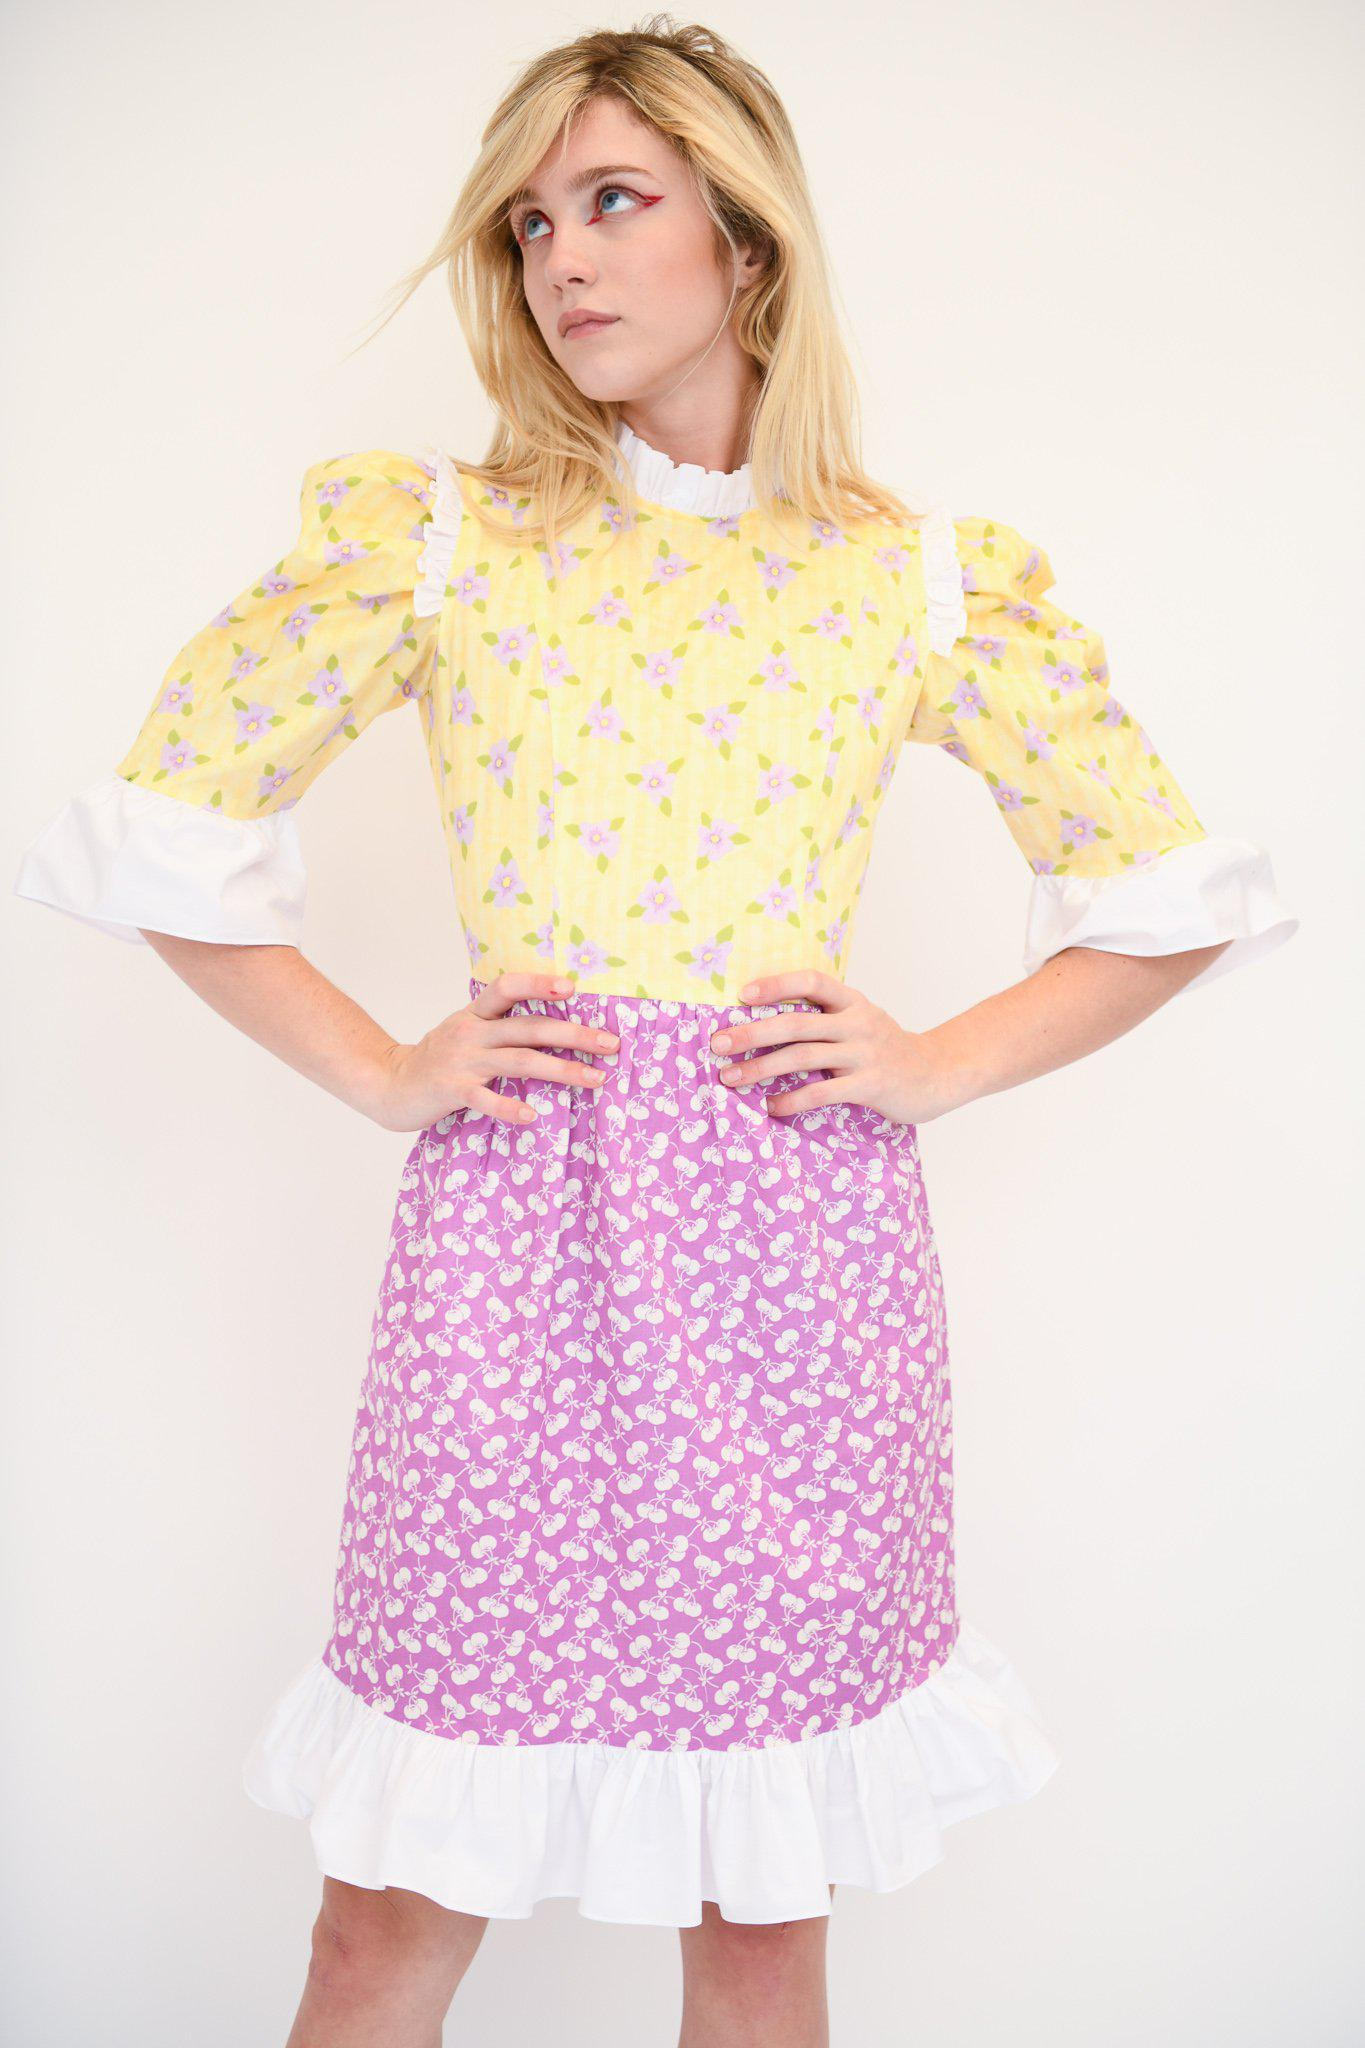 Spring Prairie Dress in Vintage Yellow and Purple Fabric 1